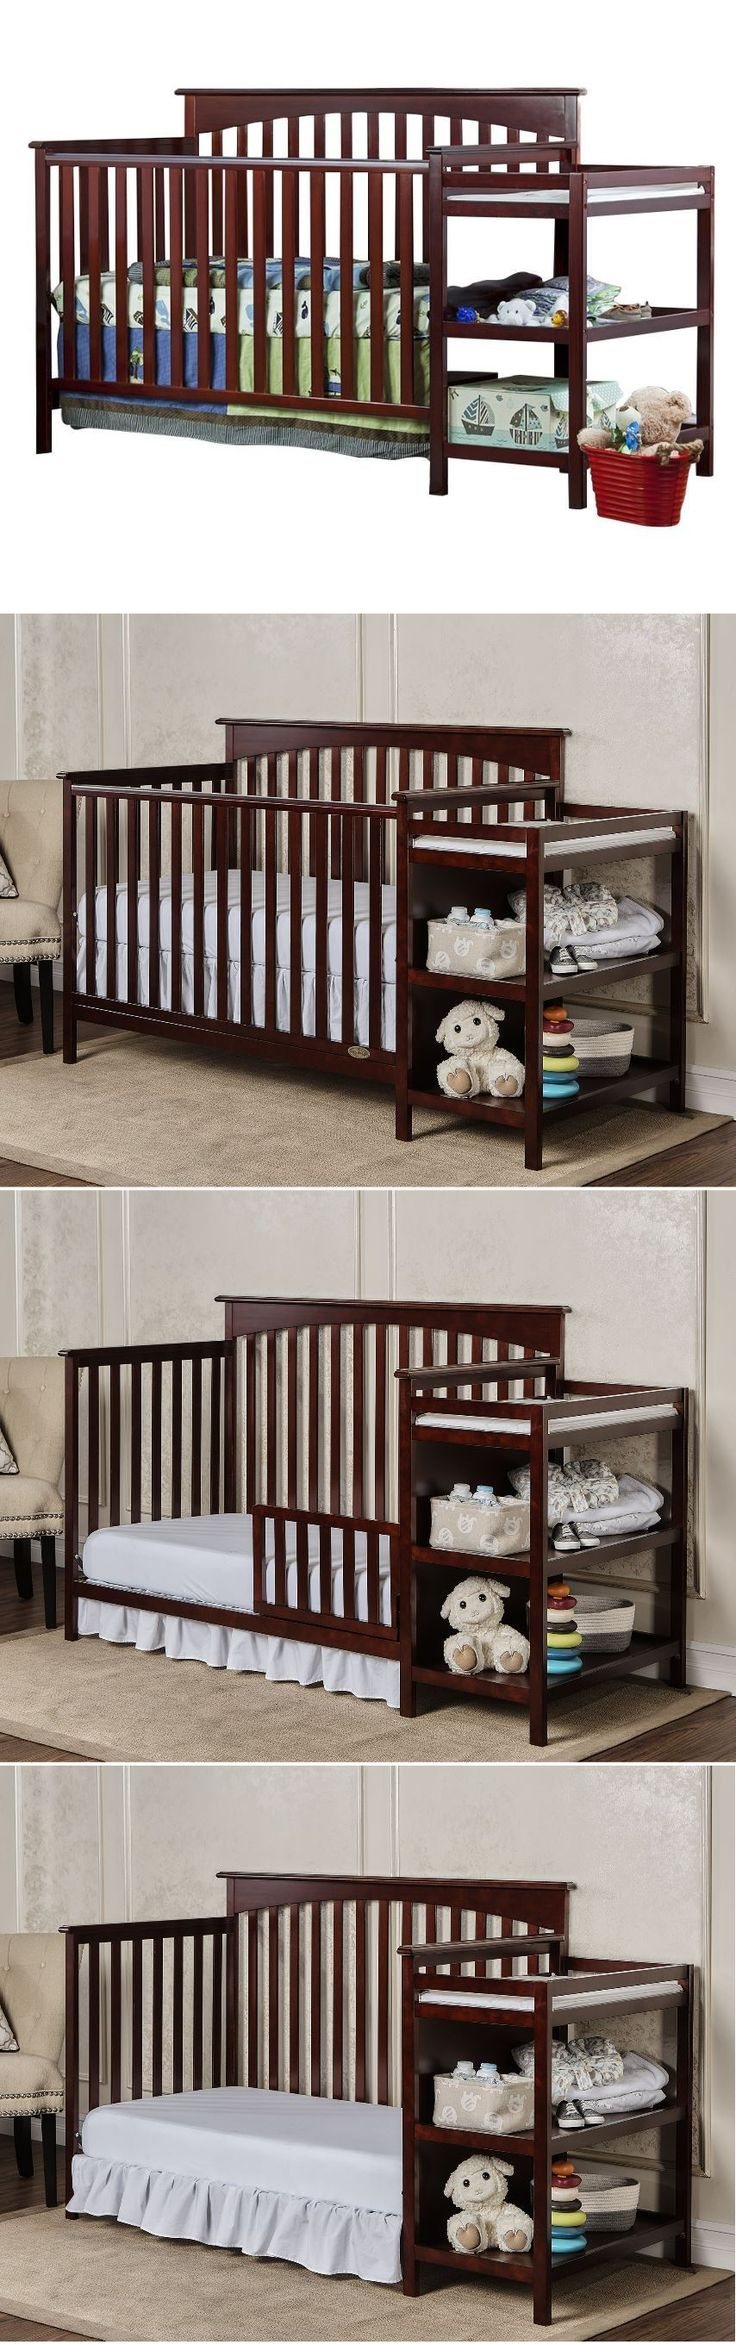 Baby nursery baby crib with changing table nursery furniture toddler bed cherry with mattress